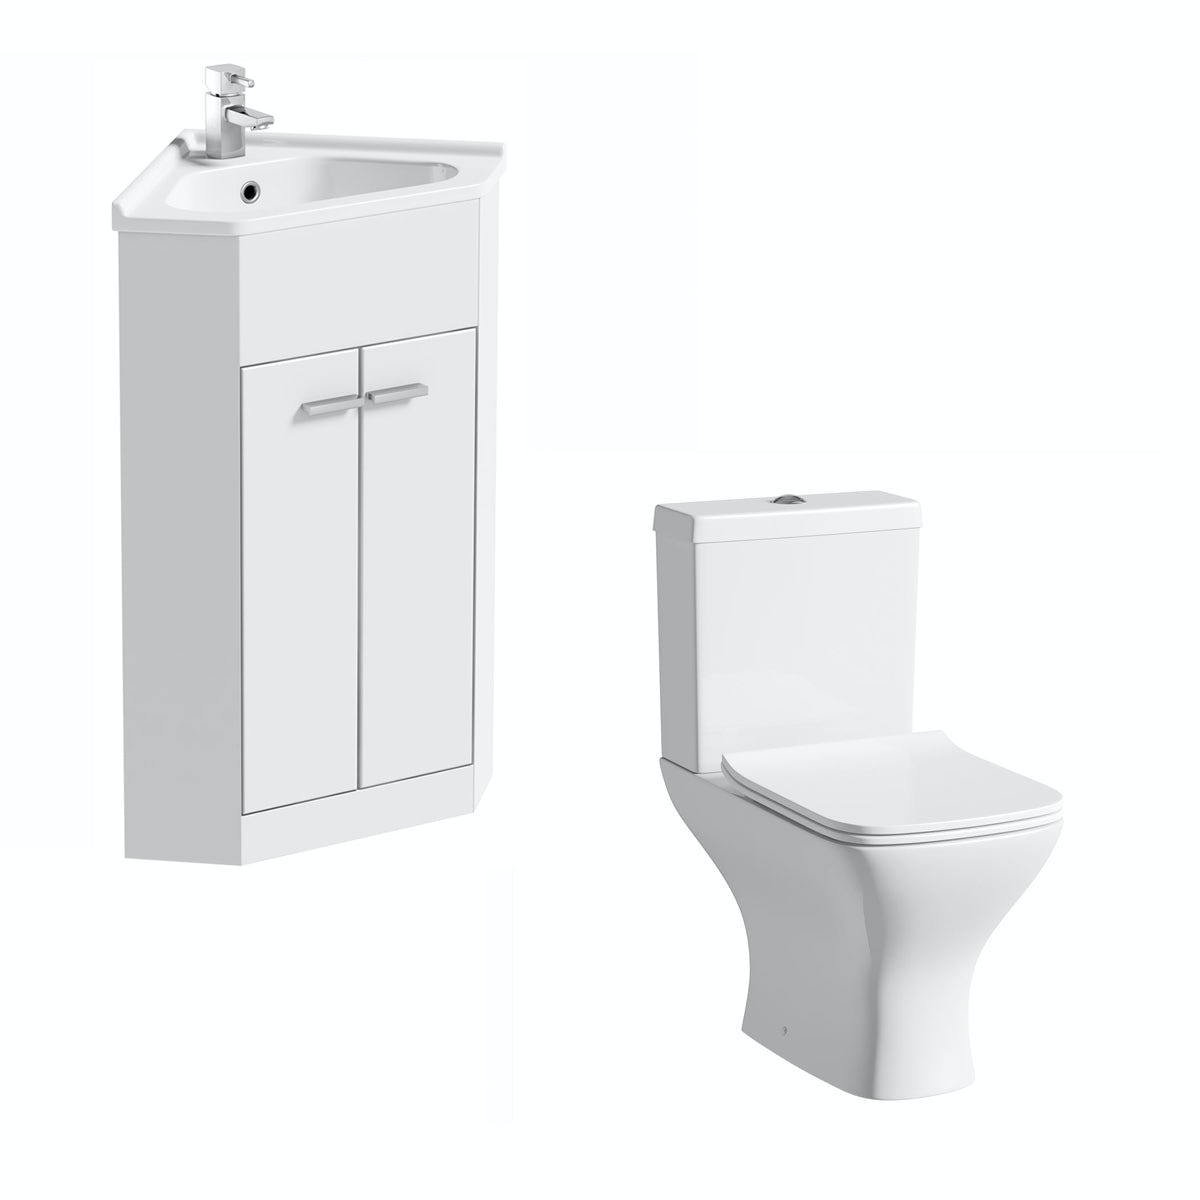 Compact White Corner Unit with Compact Square Toilet